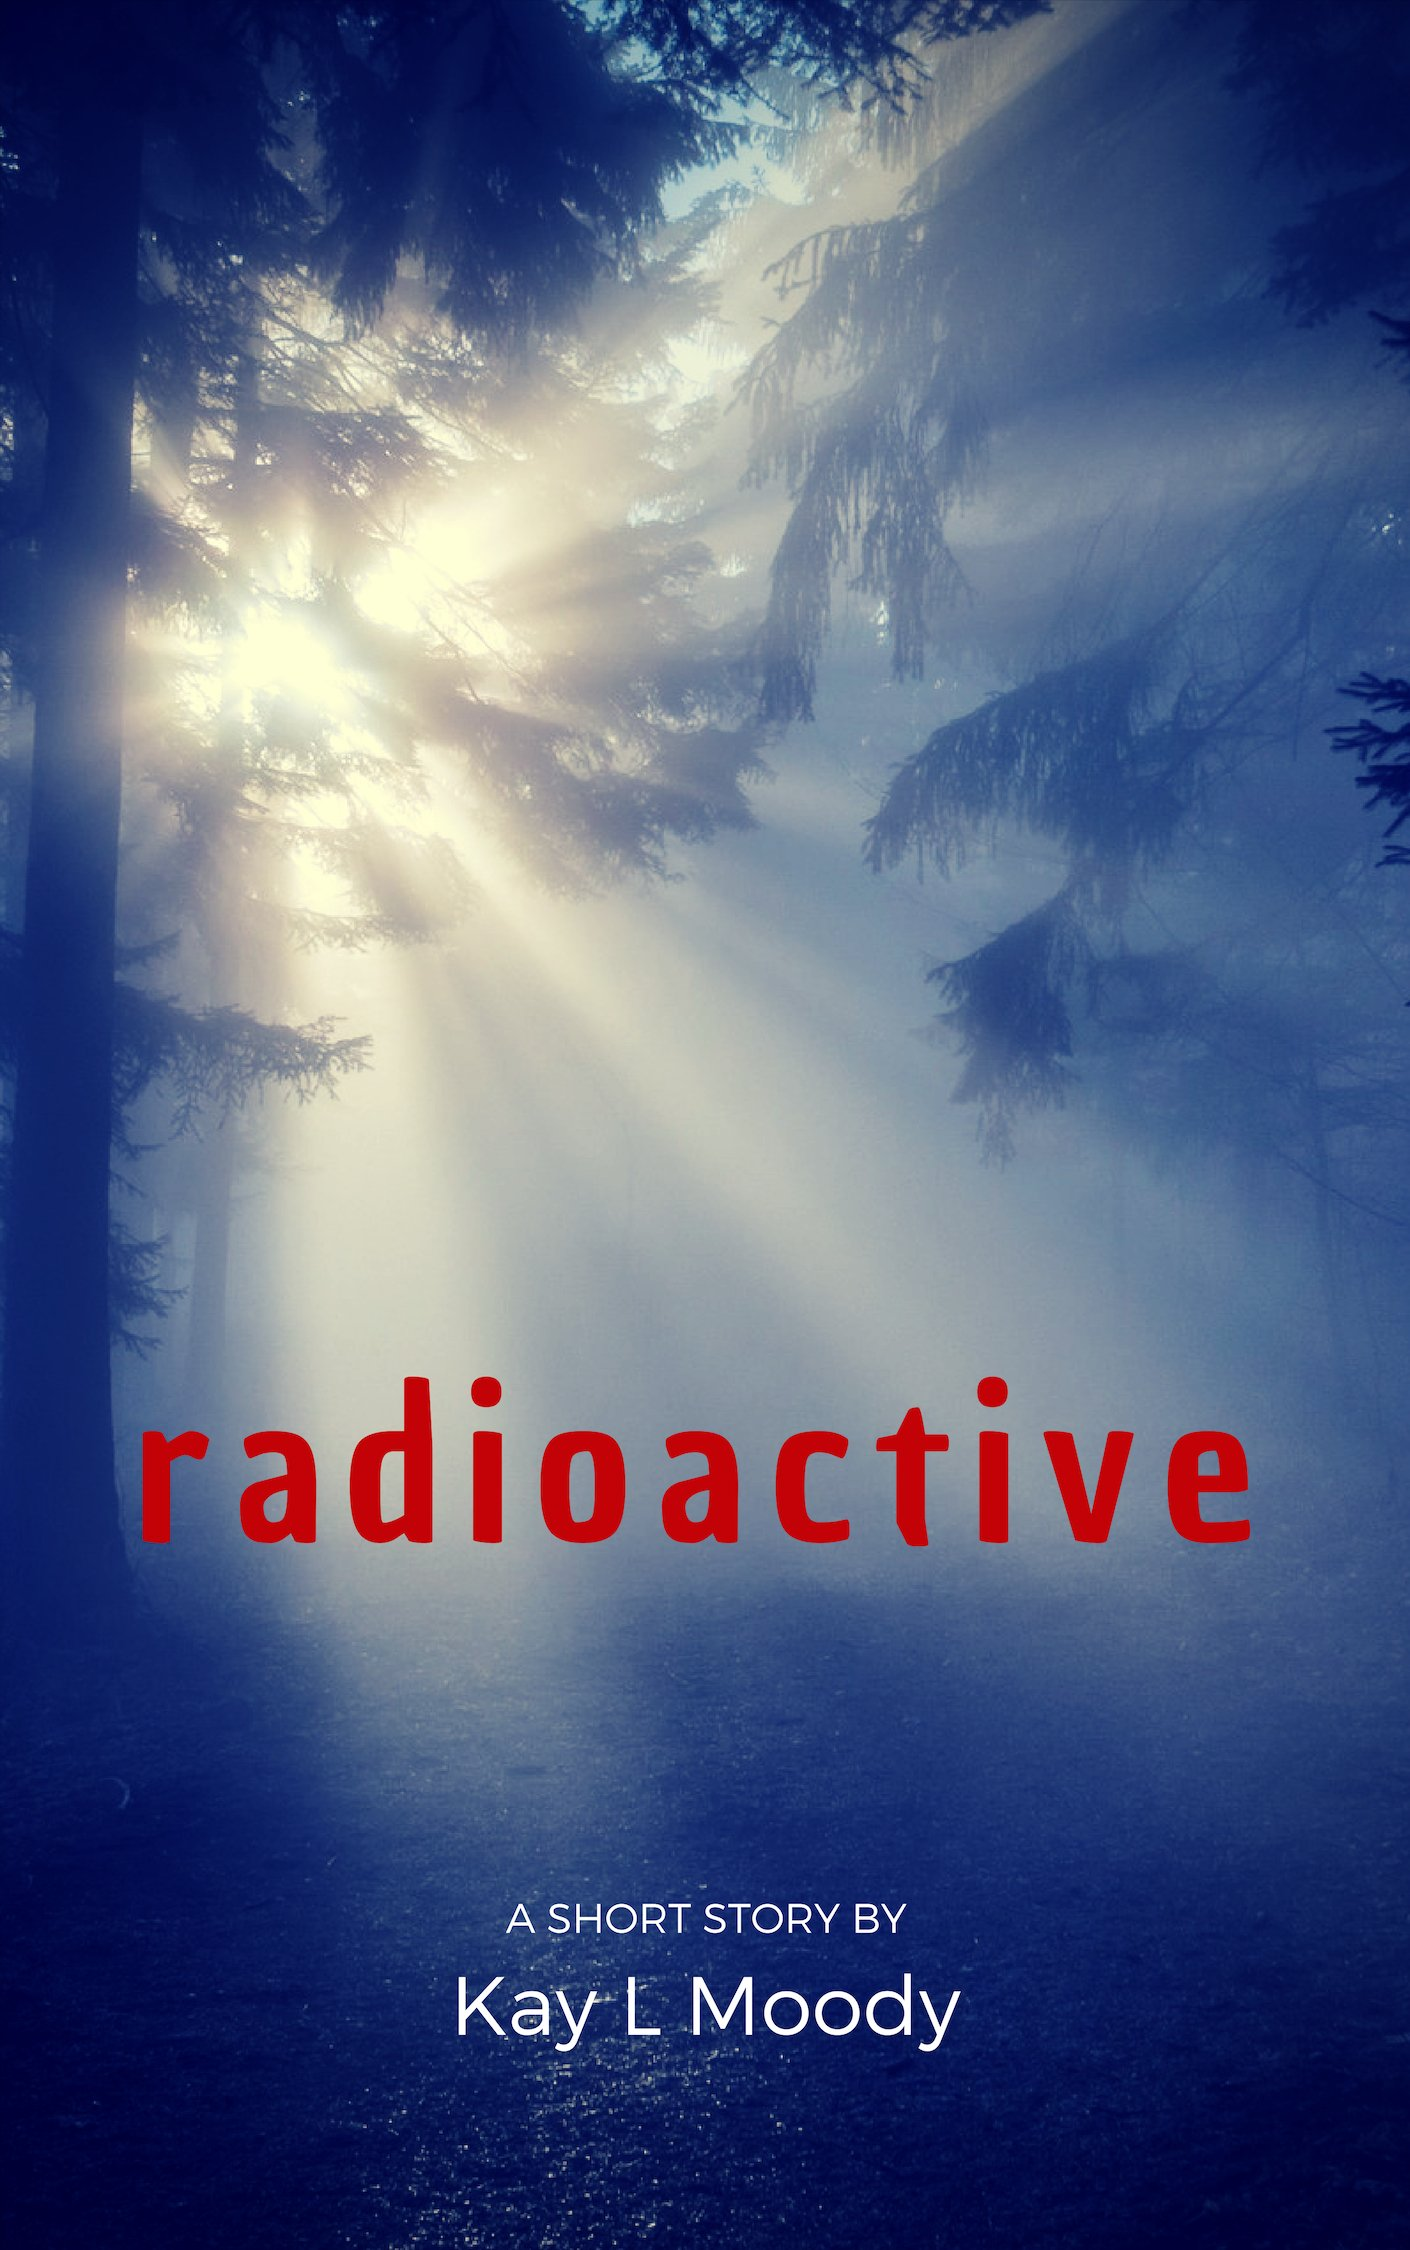 For ladies who love sci fi, Radioactive is a FREE short story with tenacious heroes, cool technology, and a dash of romance. Click through to read it now!